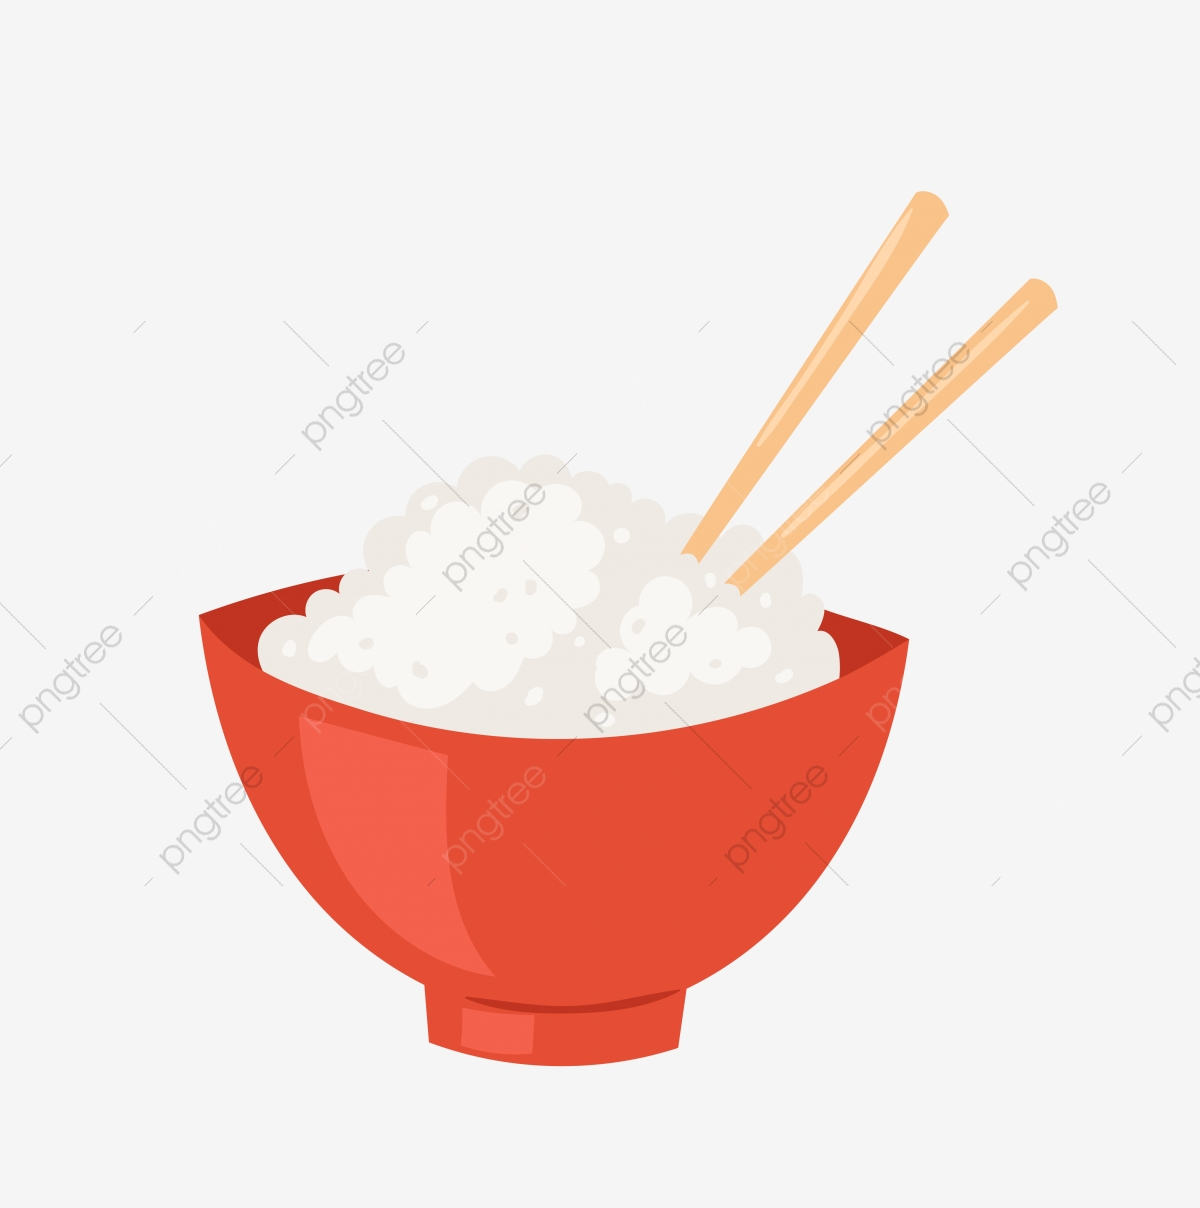 Rice Food Rice Bowl, Chopsticks, Cartoon Rice, Eat PNG Transparent.